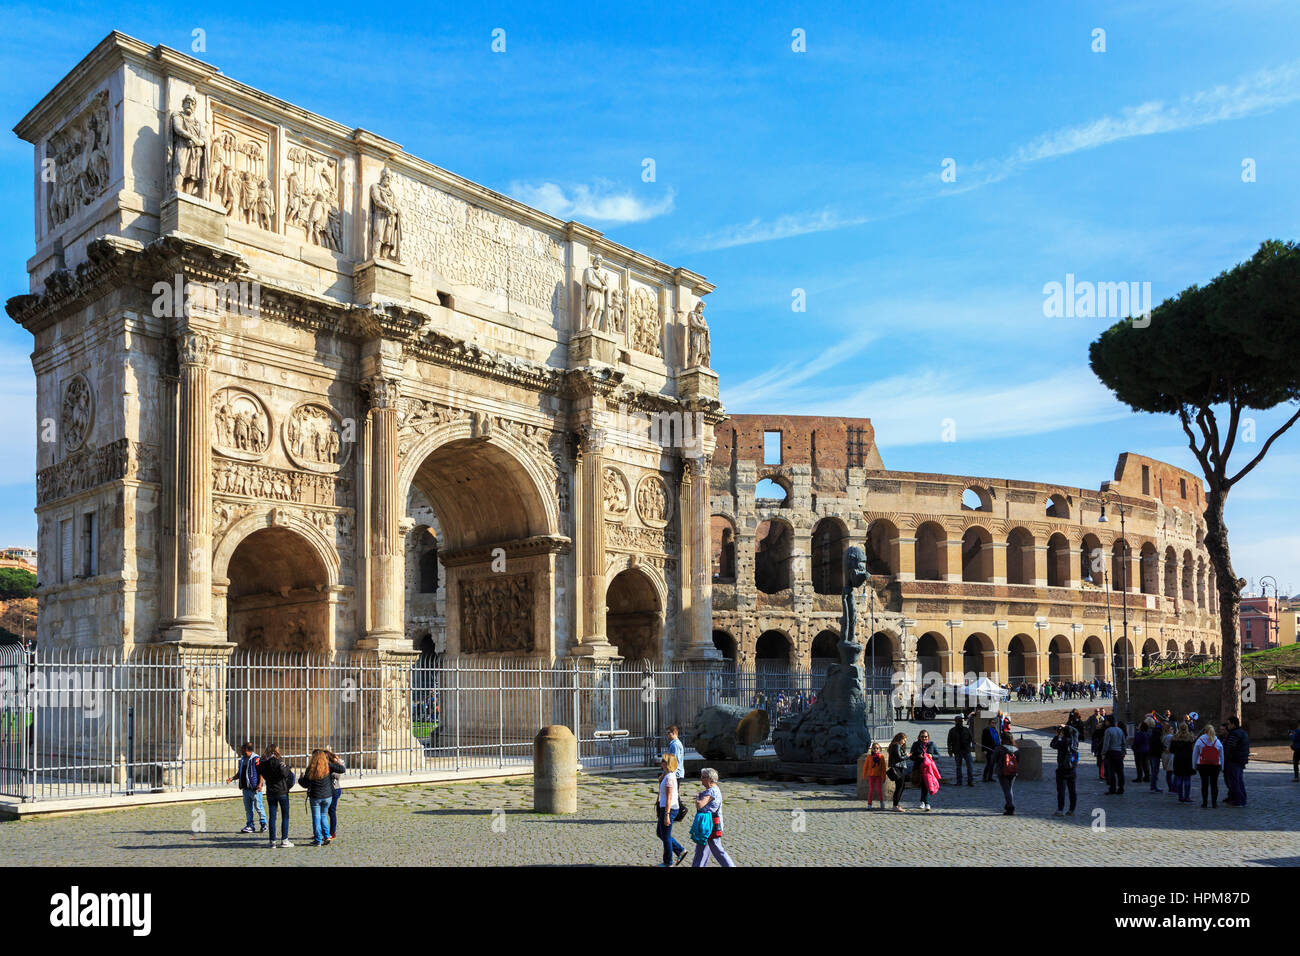 Arco de Constantino, the Triumphal arch built by the Senators in AD315, situated on the Via Triumphalis, between - Stock Image